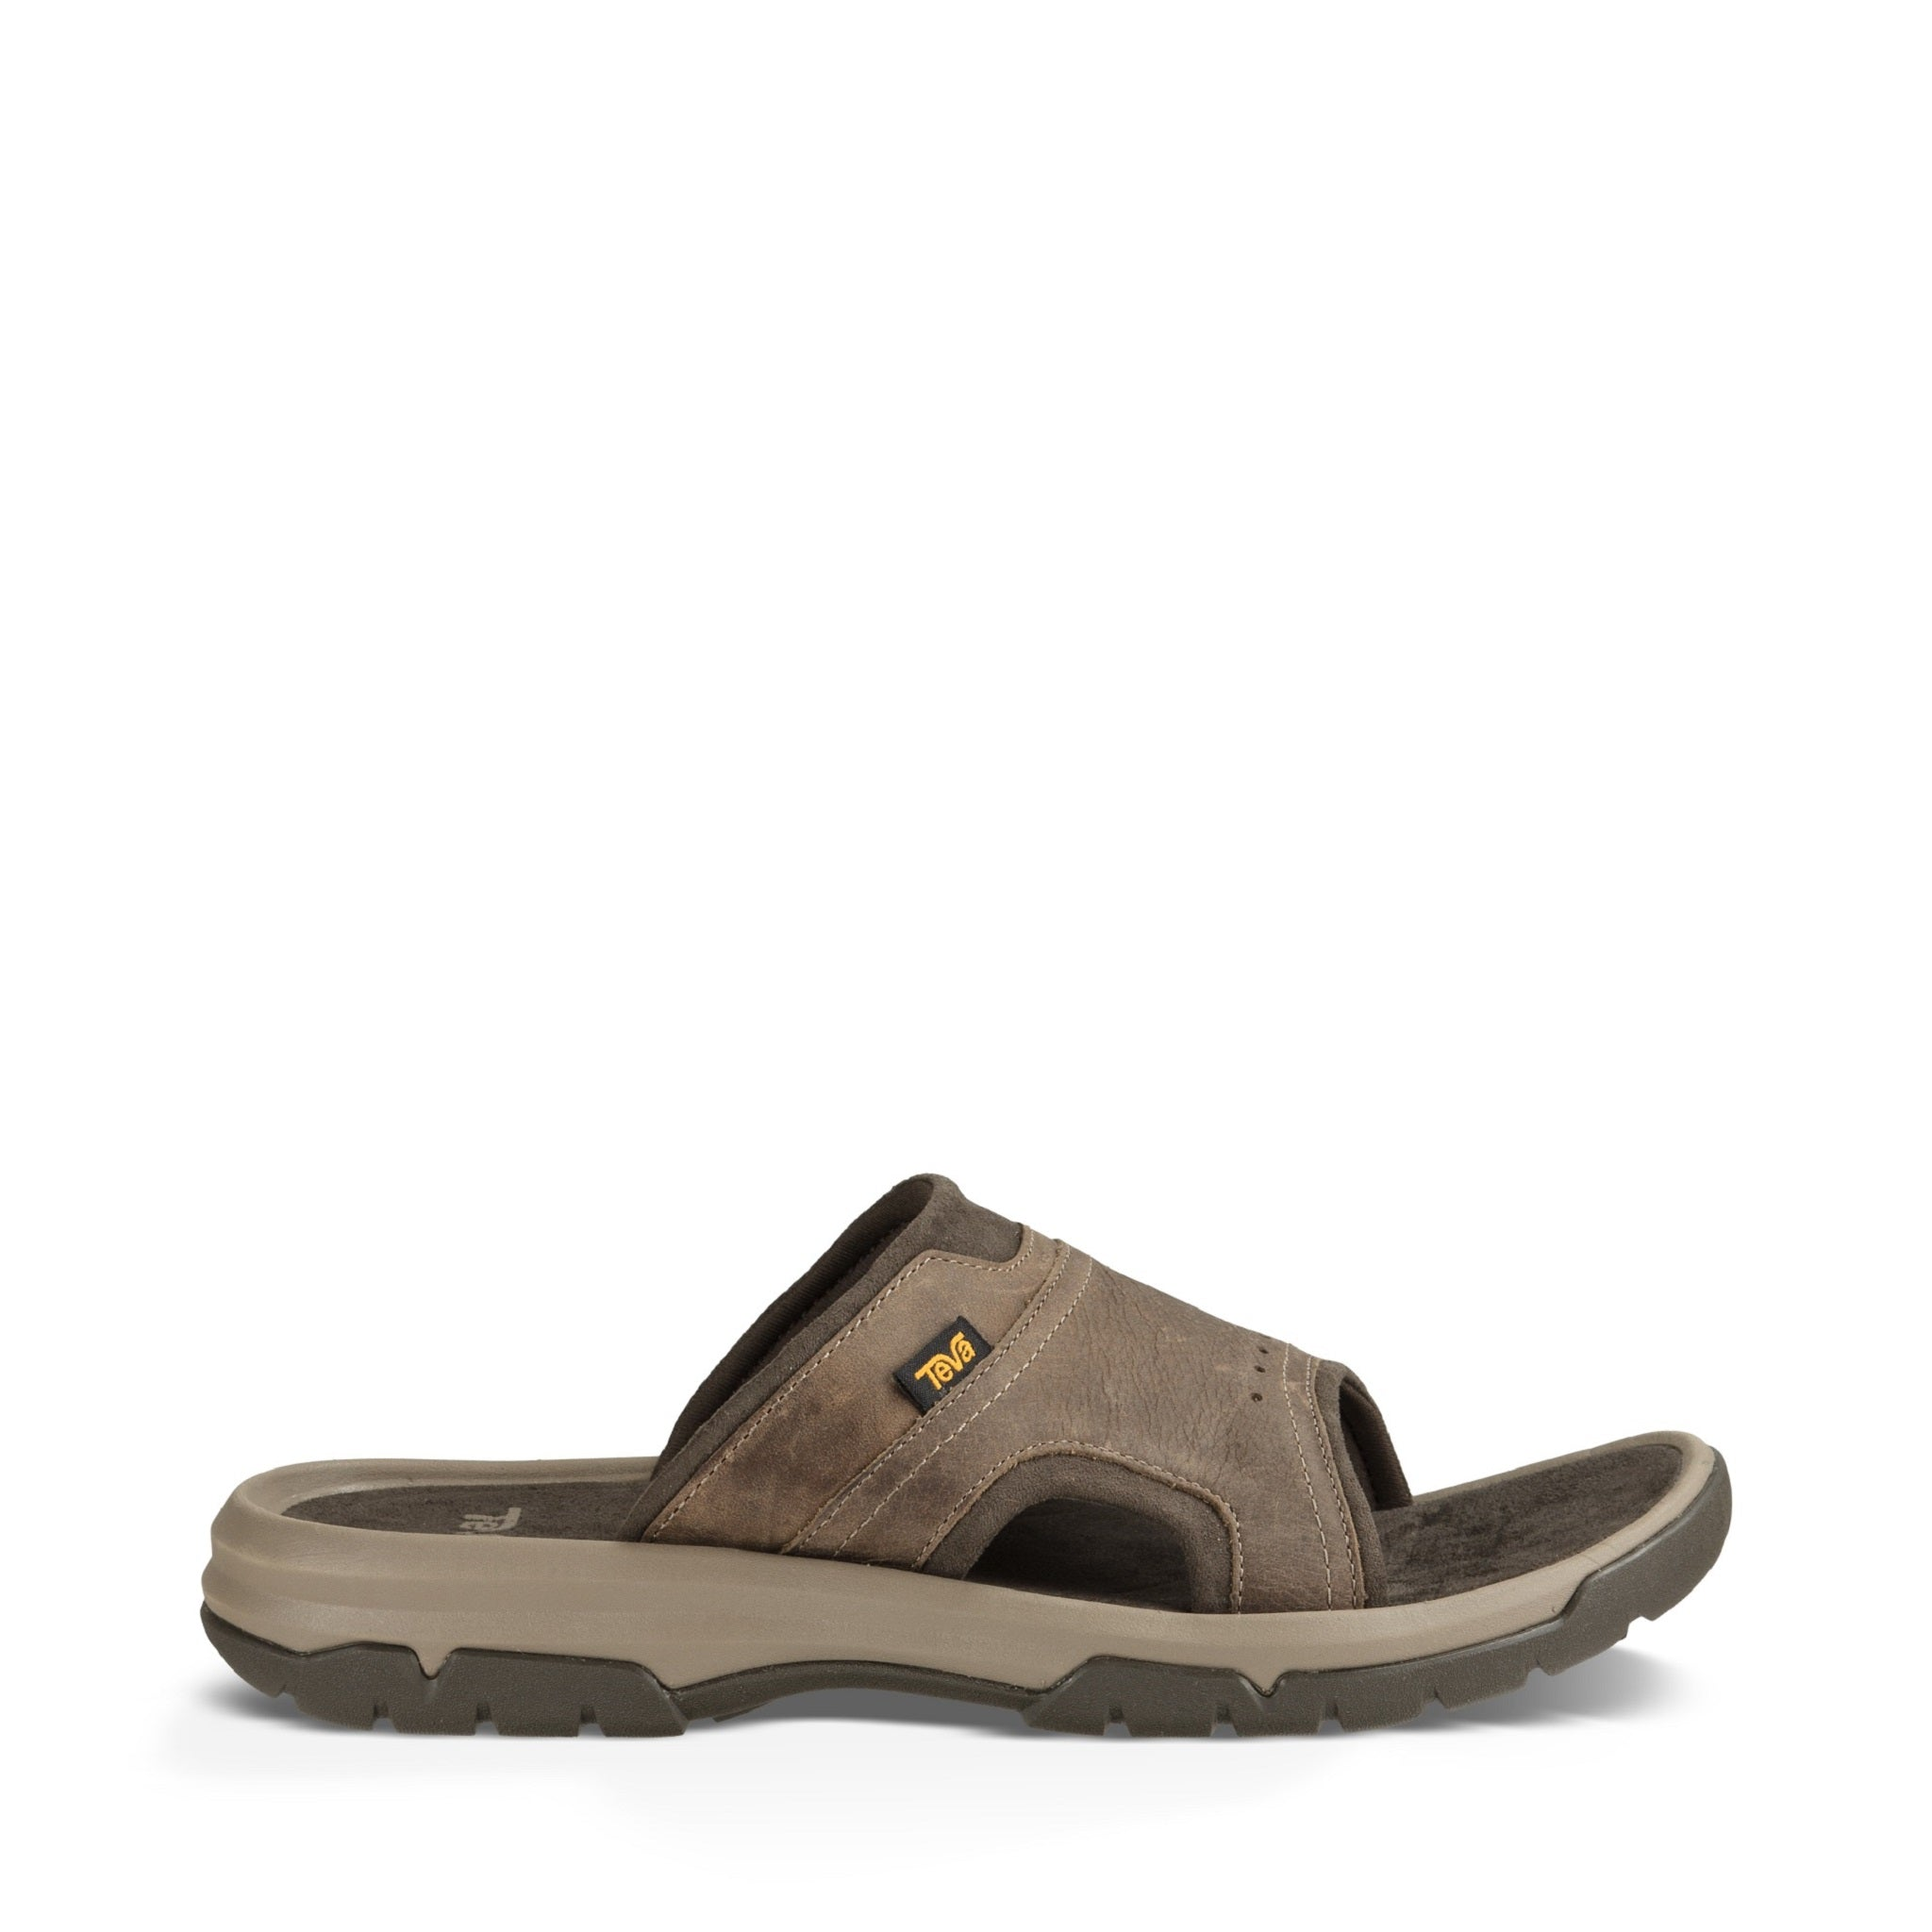 TEVA - MENS LANGDON SLIDE